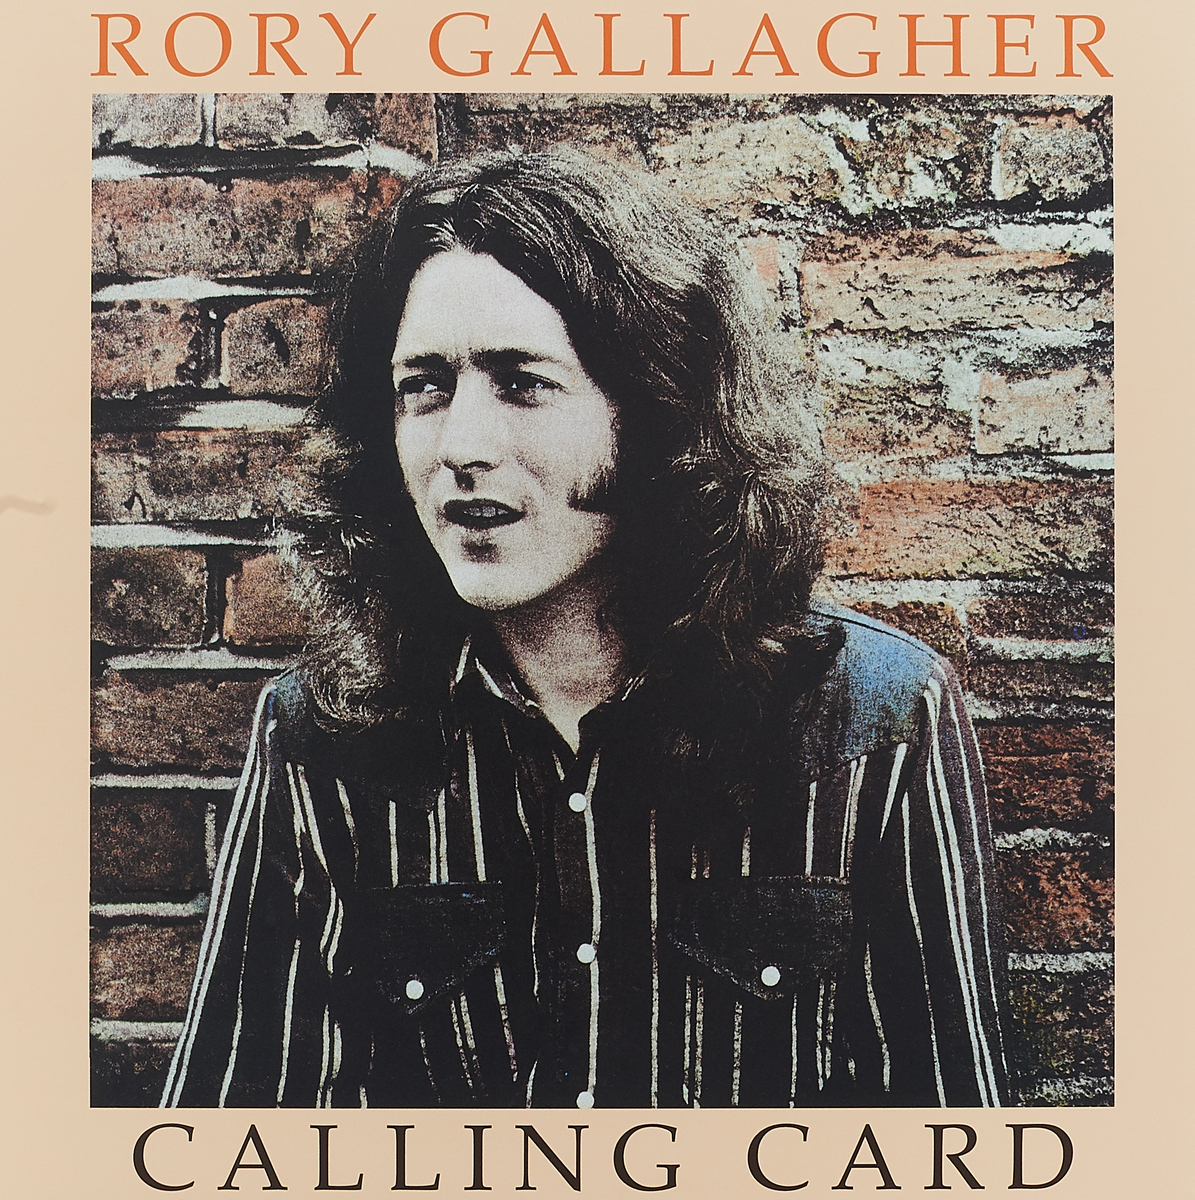 Рори Галлахер Rory Gallagher. Calling Card (LP) рори галлахер gallagher rory live in europe hq lp